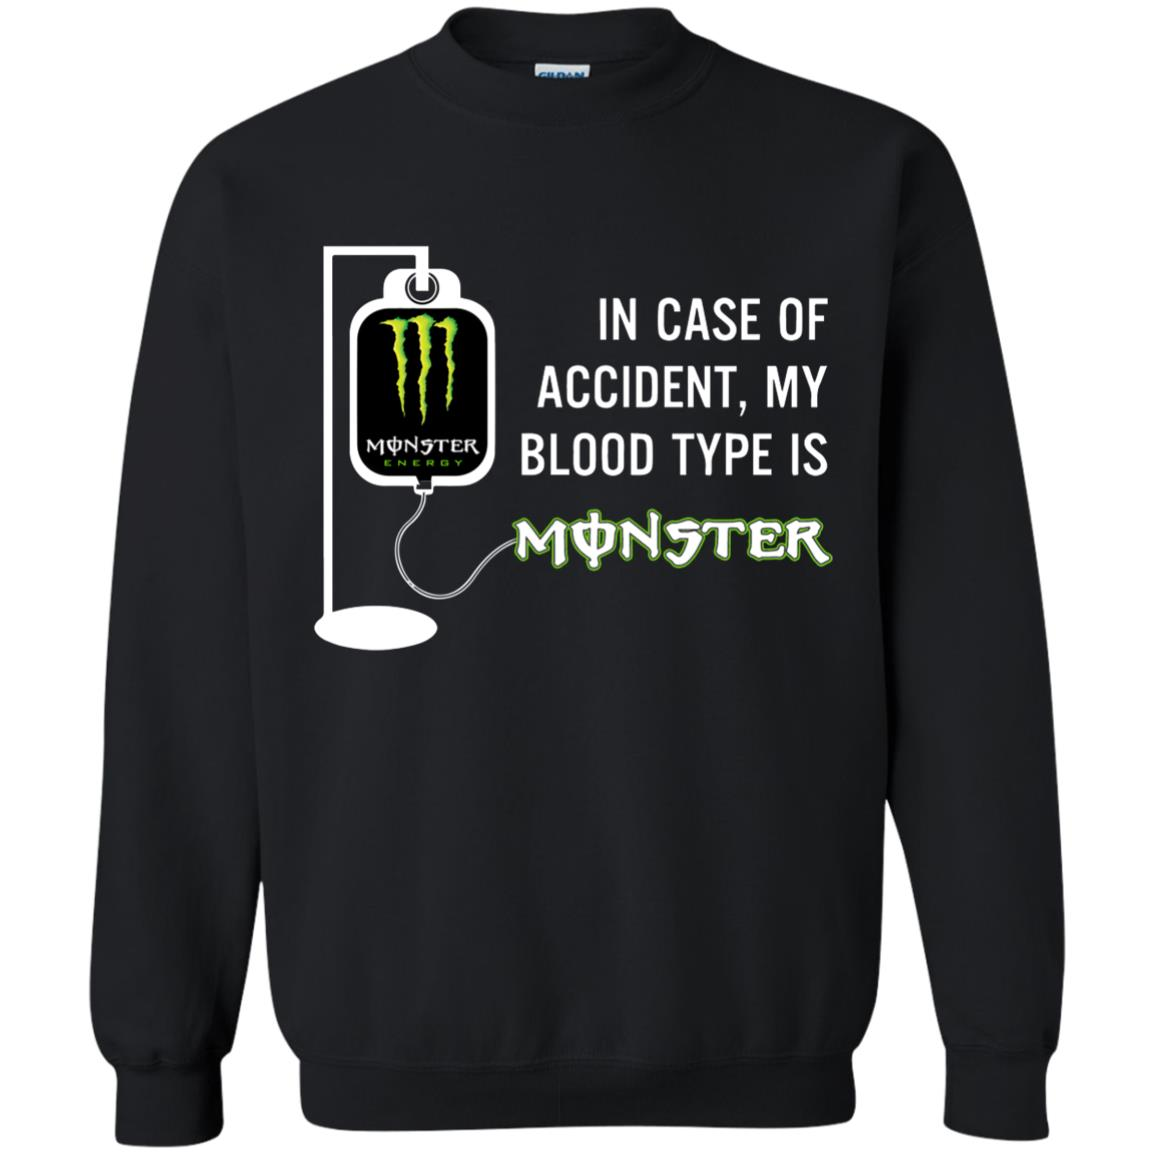 image 743 - In Case Of Accident My Blood Type Is Monster Shirt